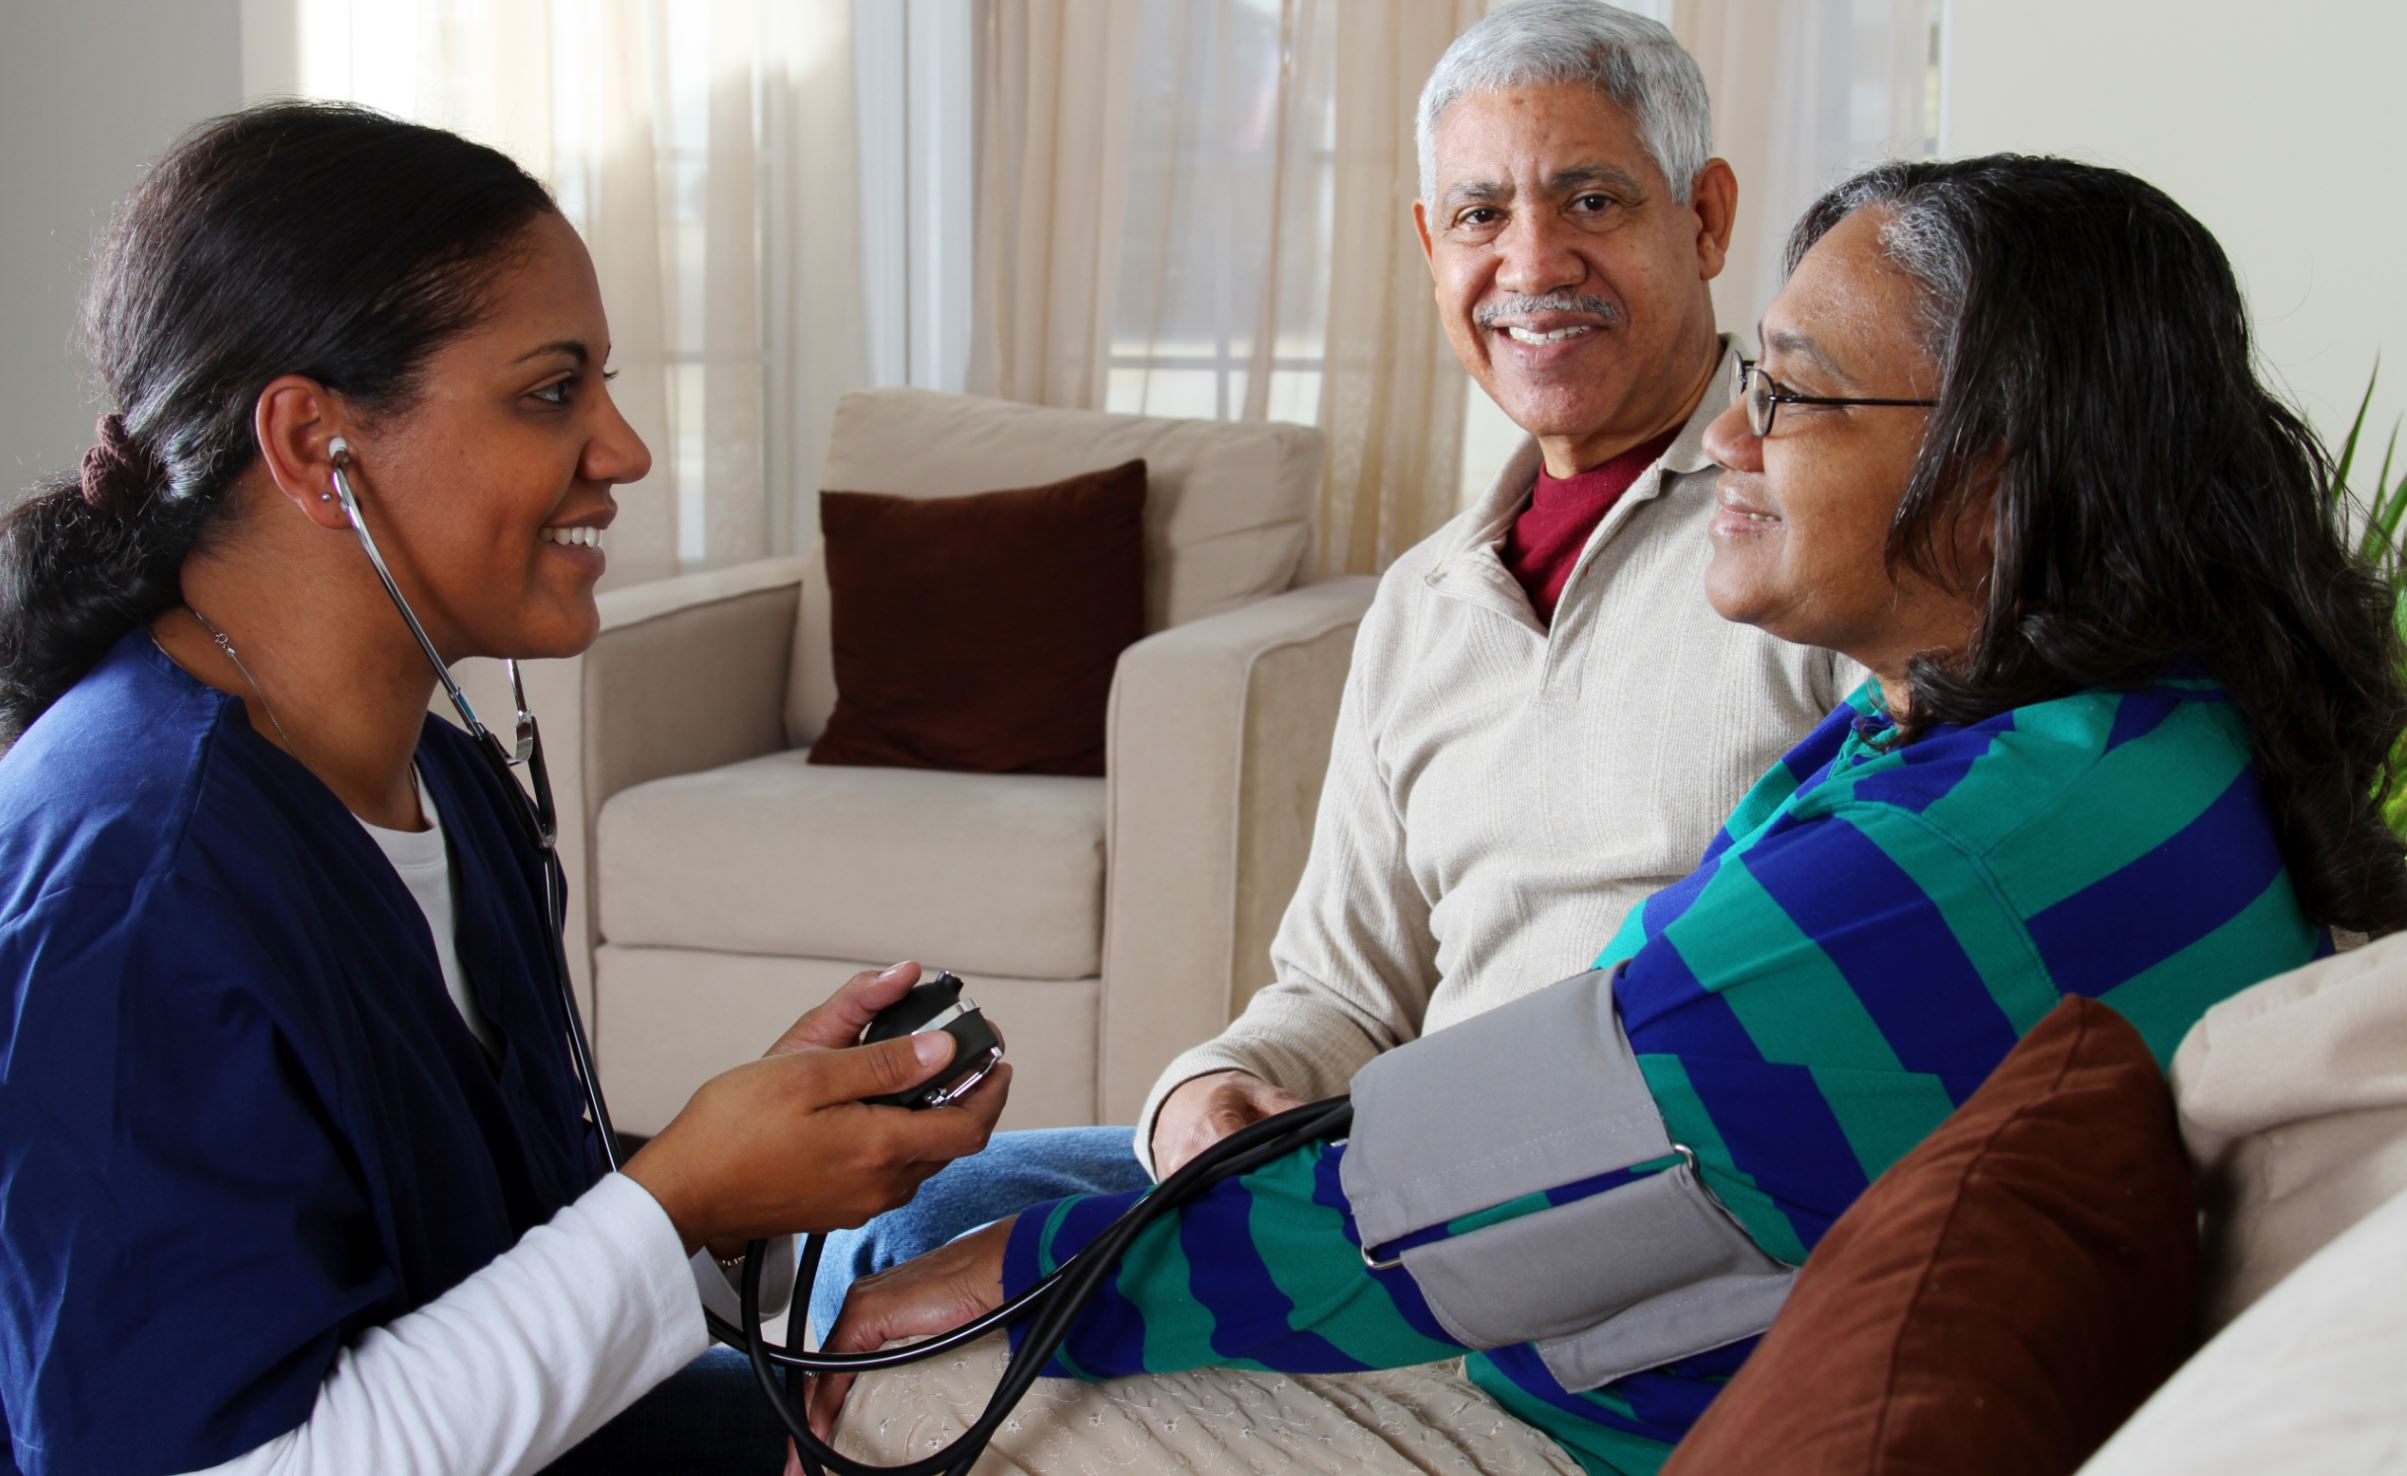 4 Tips for Finding the Best Home Health Care Provider